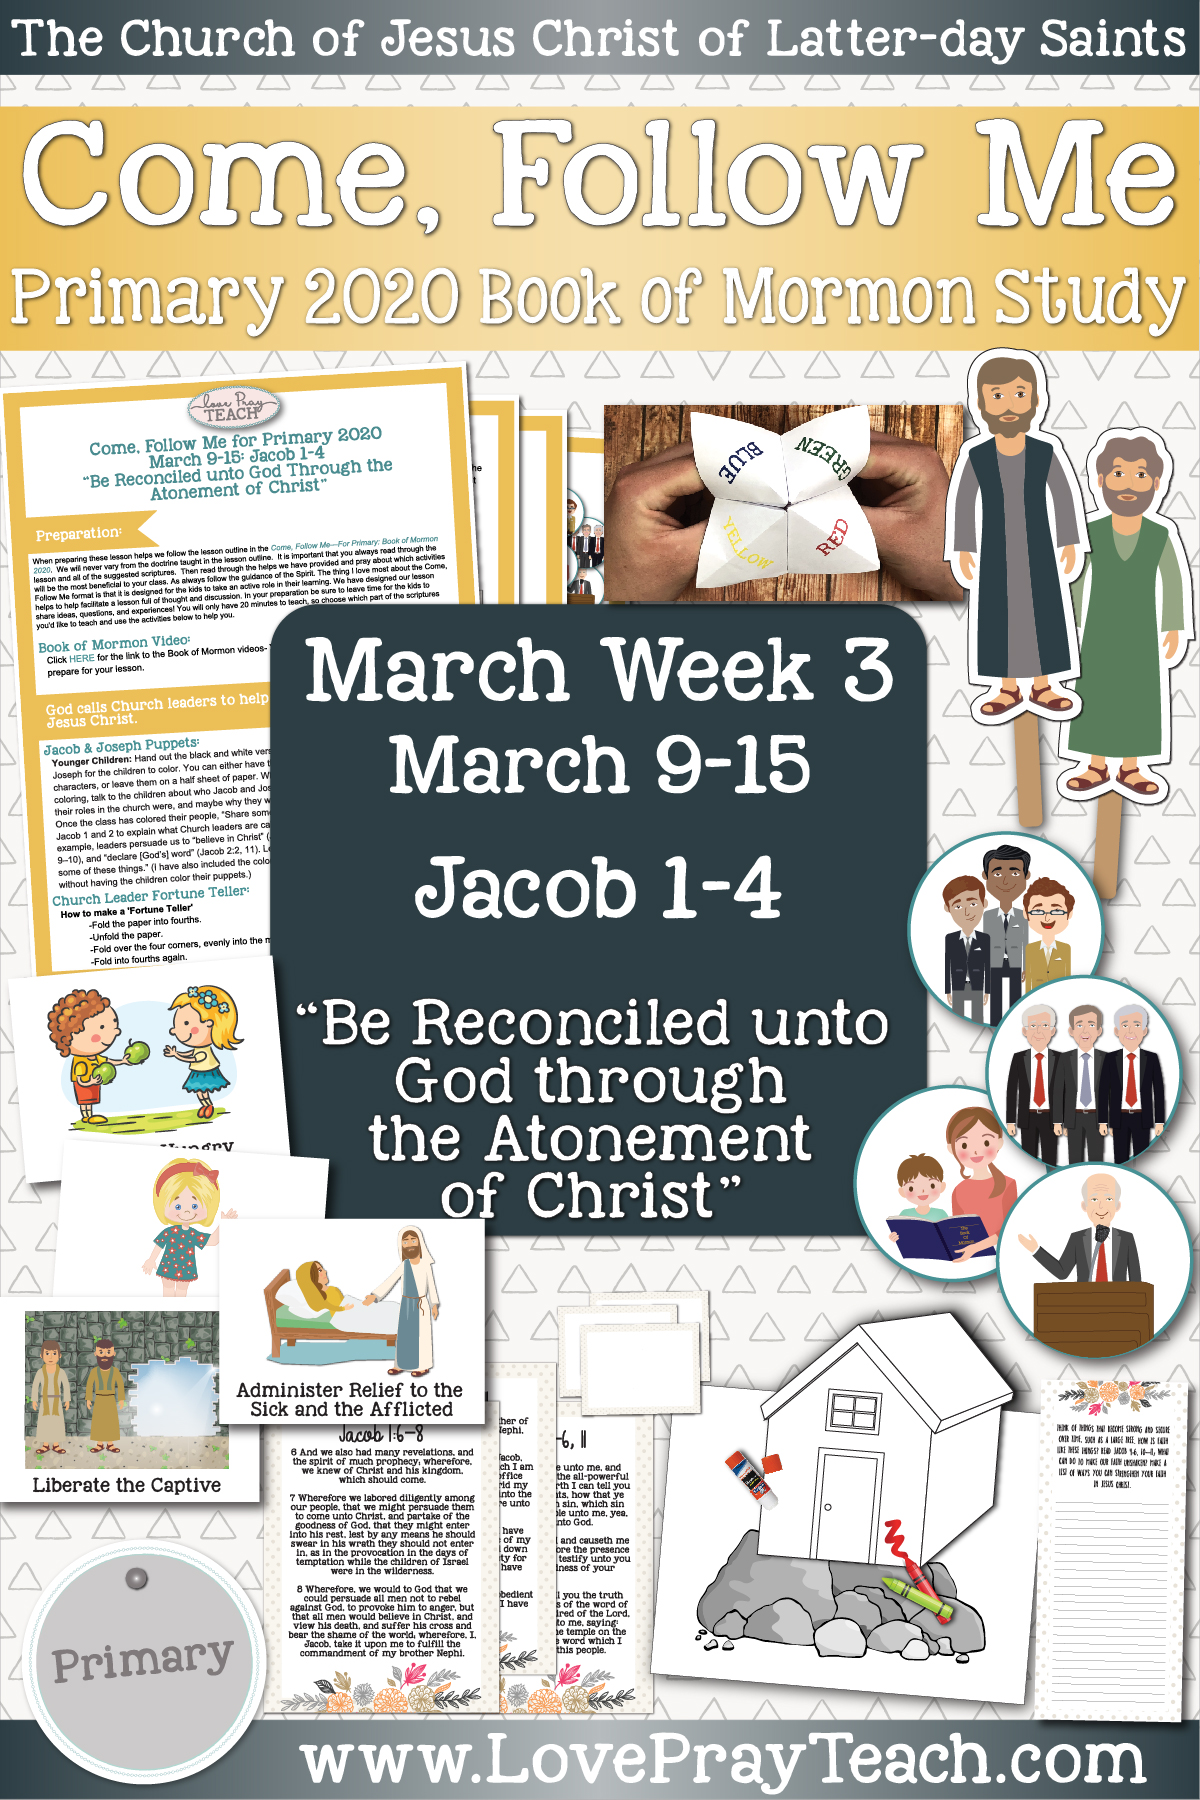 "Come, Follow Me for Primary March Week 3: March 9-15 Jacob 1-4 ""Be Reconciled unto God through the Atonement of Christ"" www.LovePrayTeach.com"